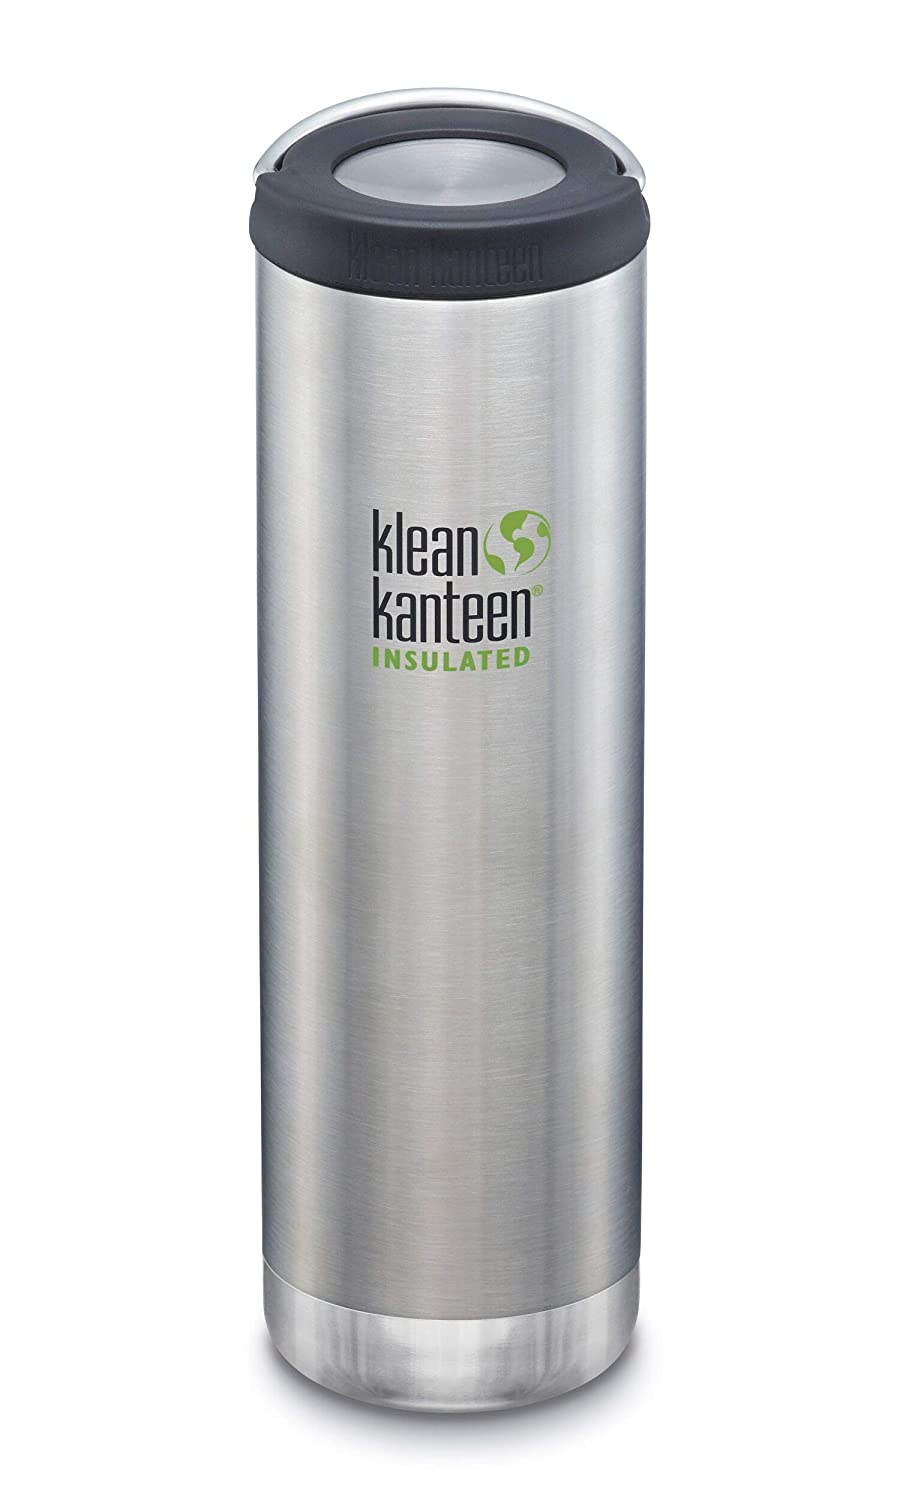 Klean Kanteen TKWide Stainless Steel Double Wall Insulated Water Bottle with Insulated Wide Loop Cap, 20-Ounce, Brushed Stainless